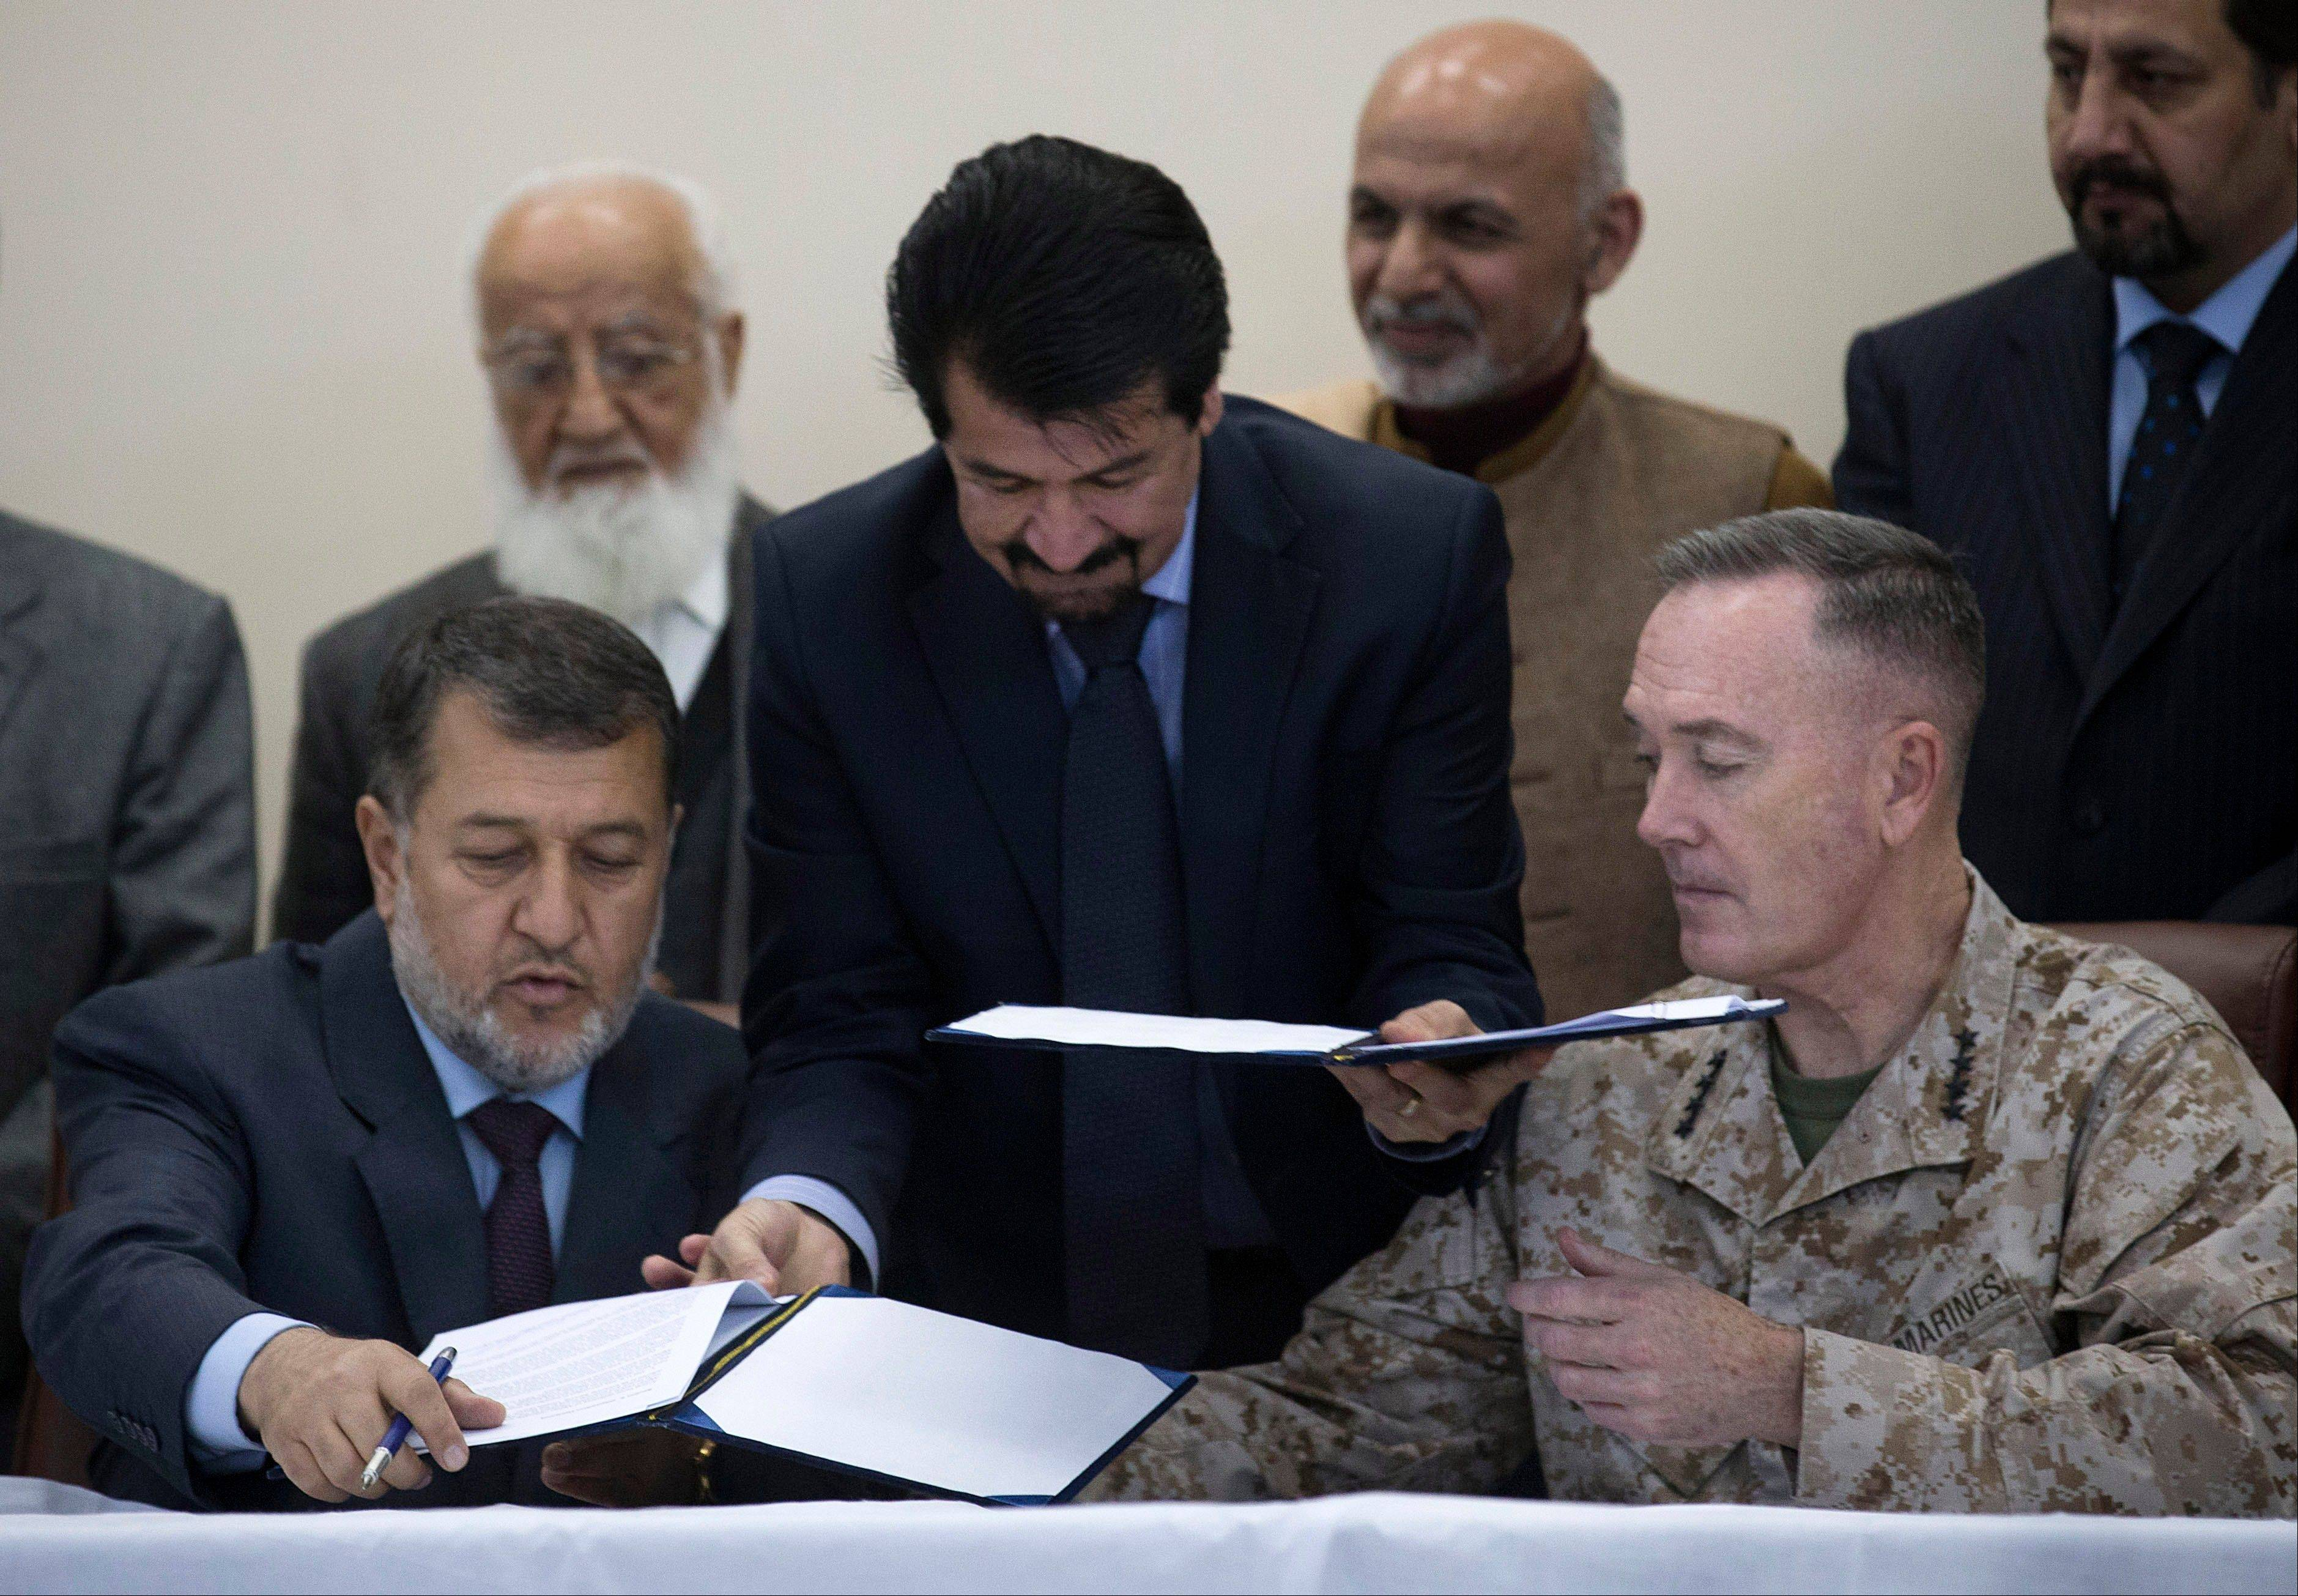 Afghan Defense Minister General Bismillah Khan, left, signs the papers to hand over the Parwan Detention Facility to Afghan authorities with top U.S. commander in Afghanistan General Joseph Dunford in Bagram, outside Kabul, Afghanistan, Monday.